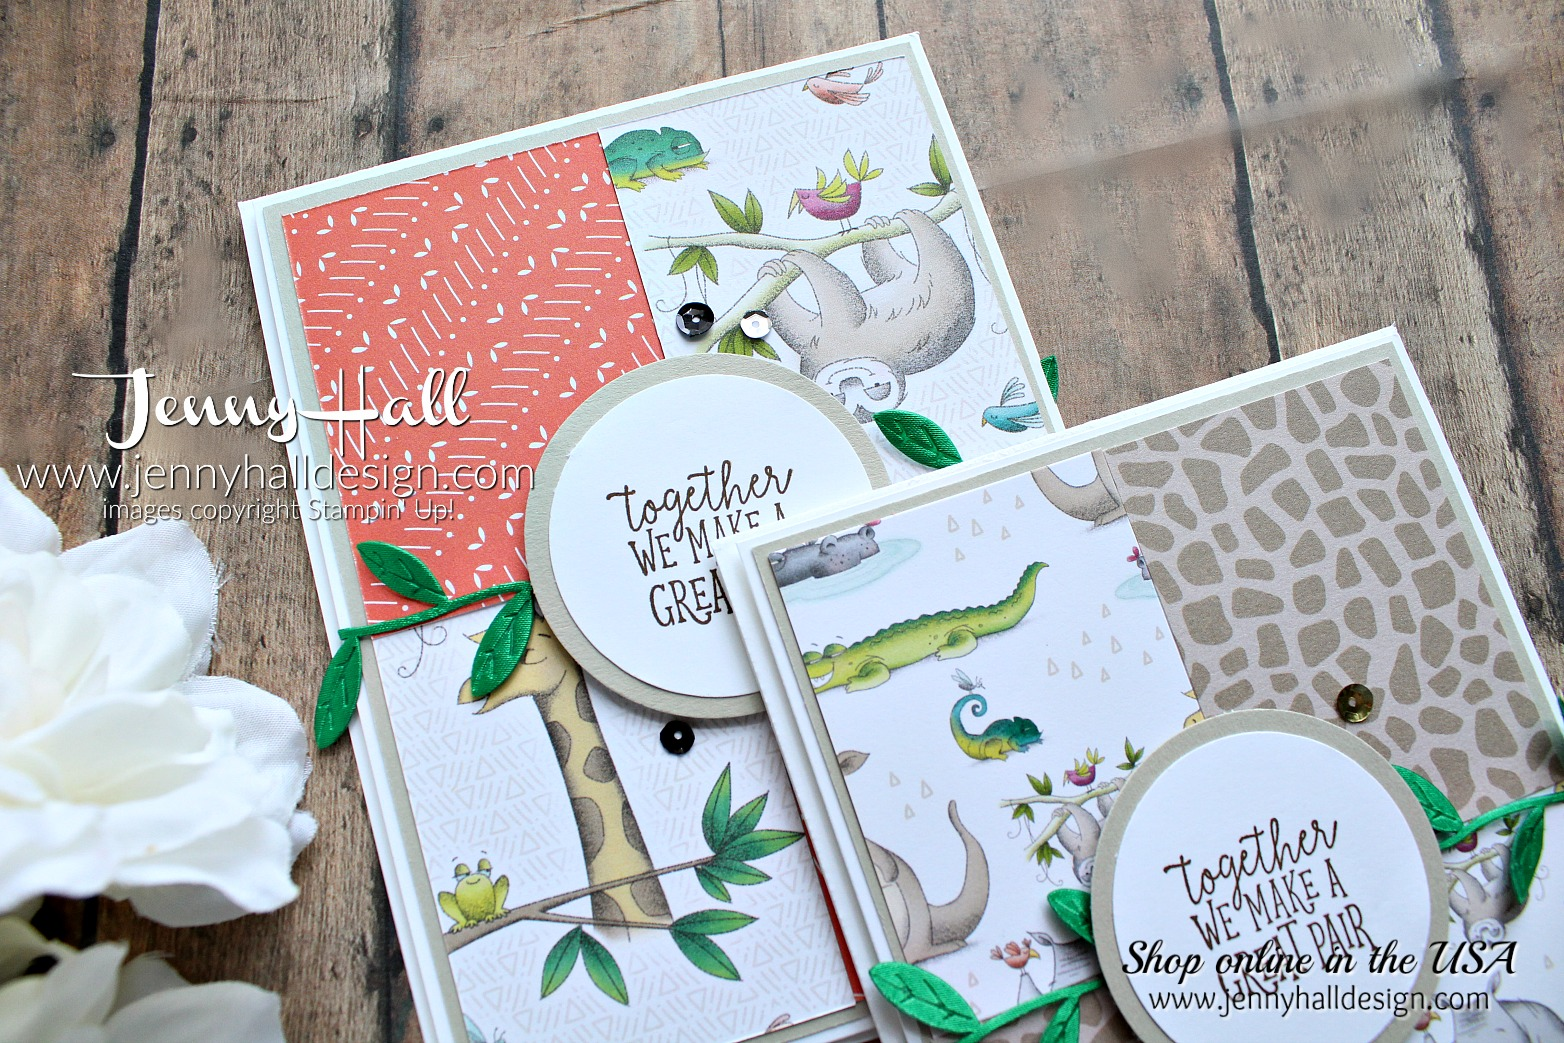 Flipping over DSP cards created by Jenny Hall at www.jennyhalldesign.com for #cardmaking #cardmaker #animalouting #animalexpedition #inspirecreatechallenge #jennyhall #jennyhalldesign #jennystampsup #jennyhallstampinup #stamping #stampinup #videotutorial #youtuber #papercraft #kidscraft #diy #maker